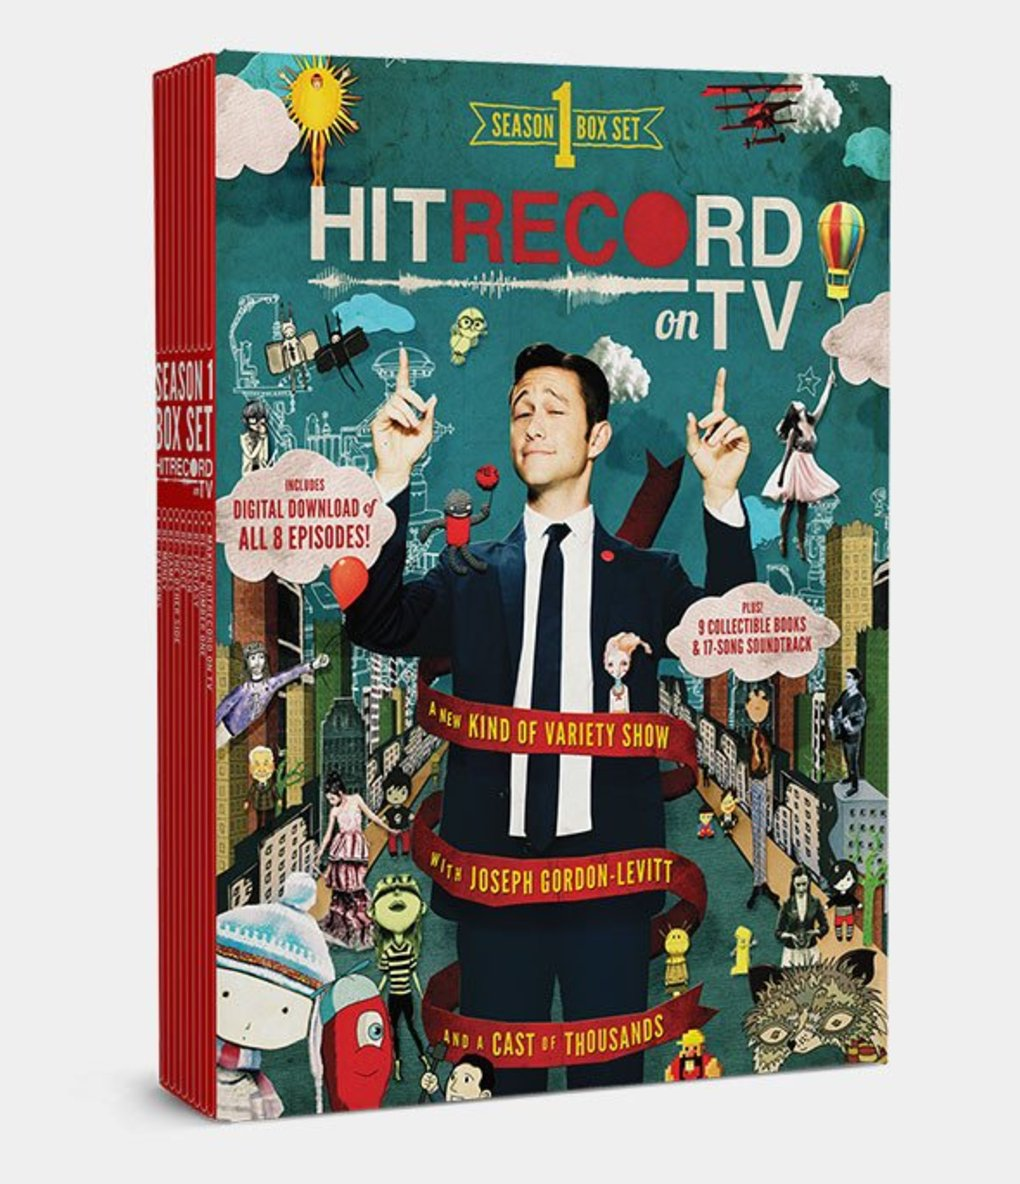 RT @hitRECord: If you don't have the box set of our TV show yet... https://t.co/gQK7RZZsaH #HITRECORDonTV https://t.co/4YYox8fnmb